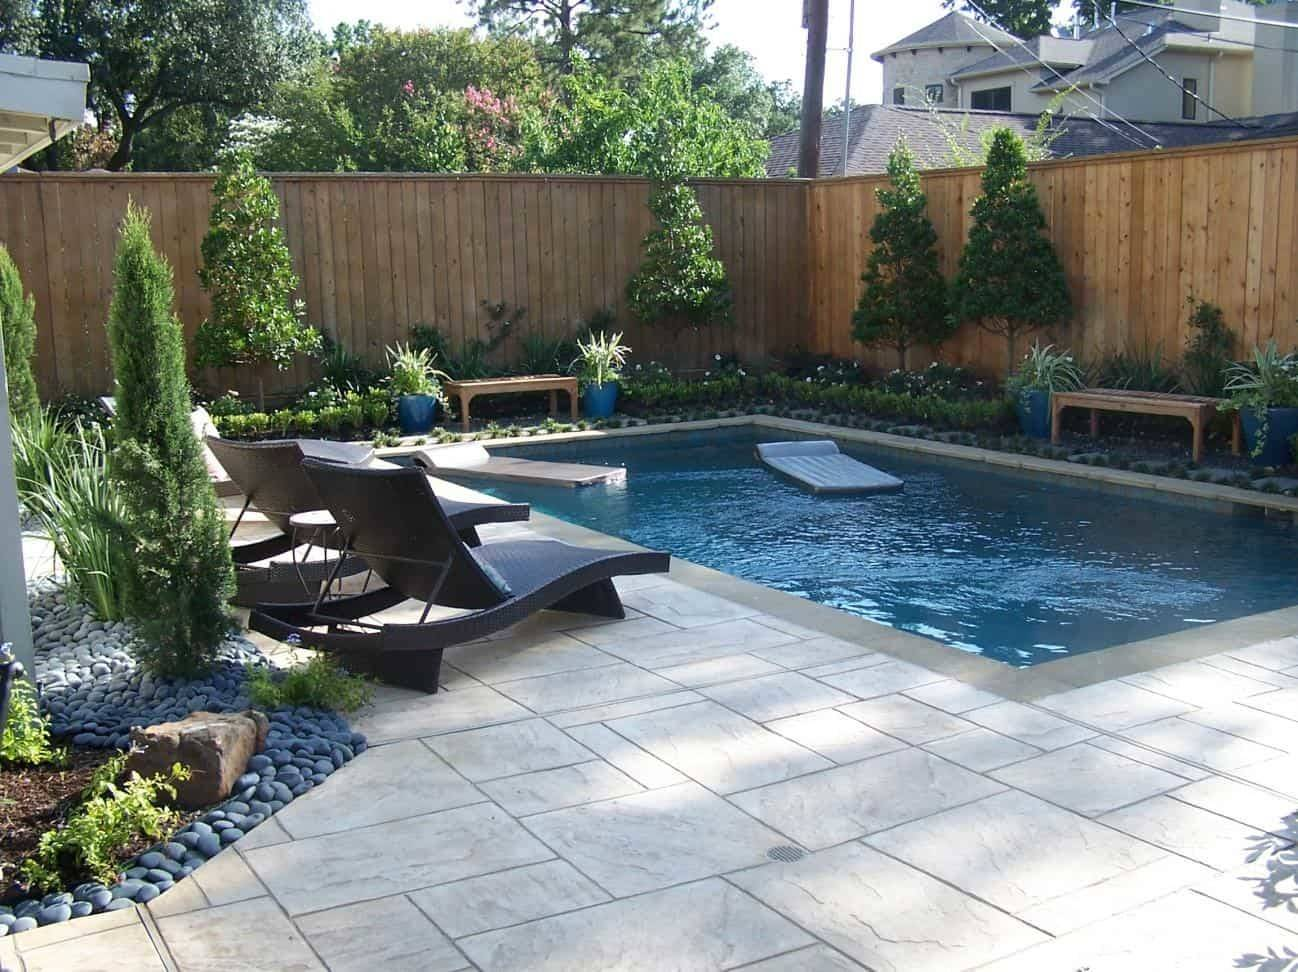 About us 3d pools landscape houston katy Swimming pool installation companies near me